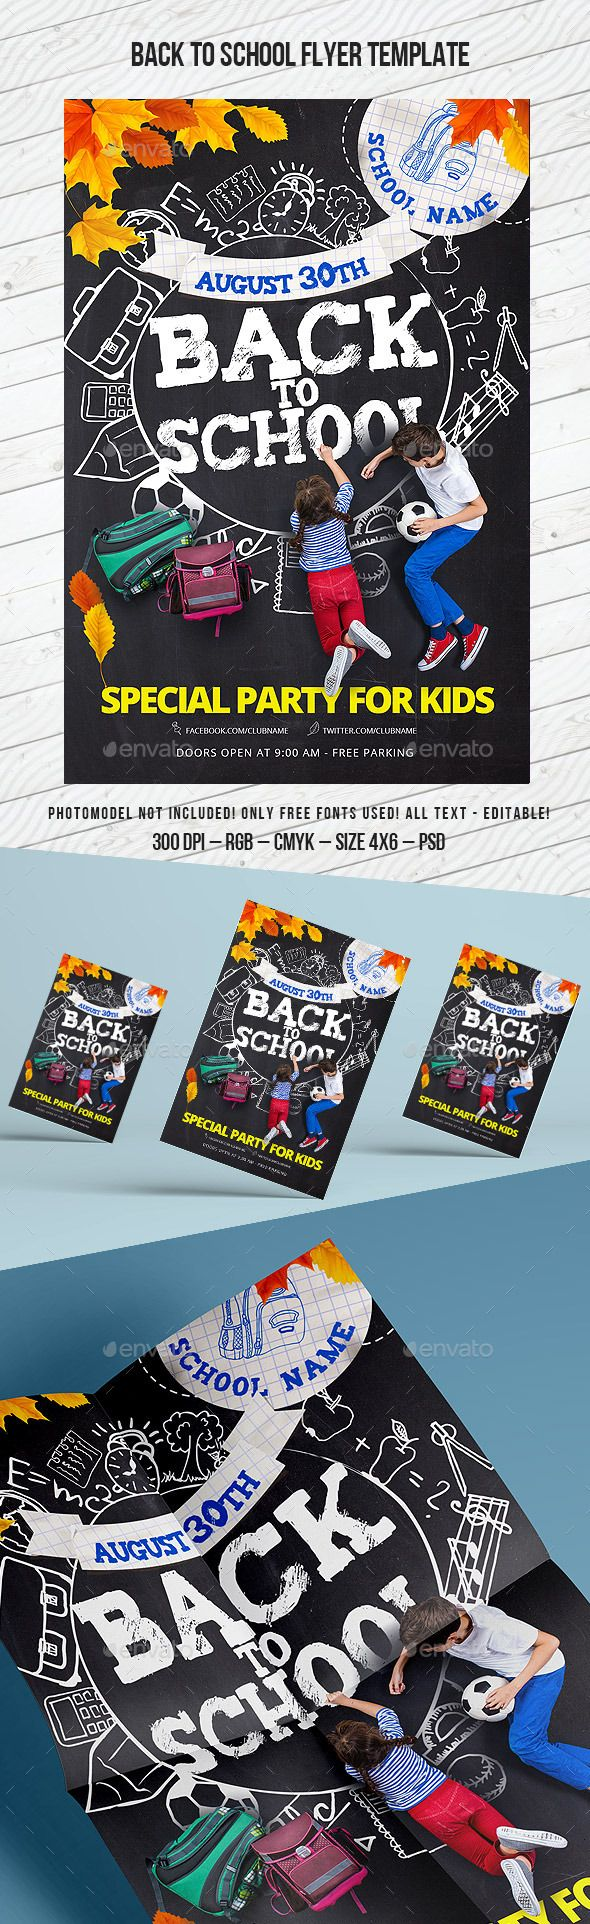 Back to School Flyer Template #design Download: http://graphicriver.net/item/back-to-school-flyer-template-party-for-kids/12429663?ref=ksioks